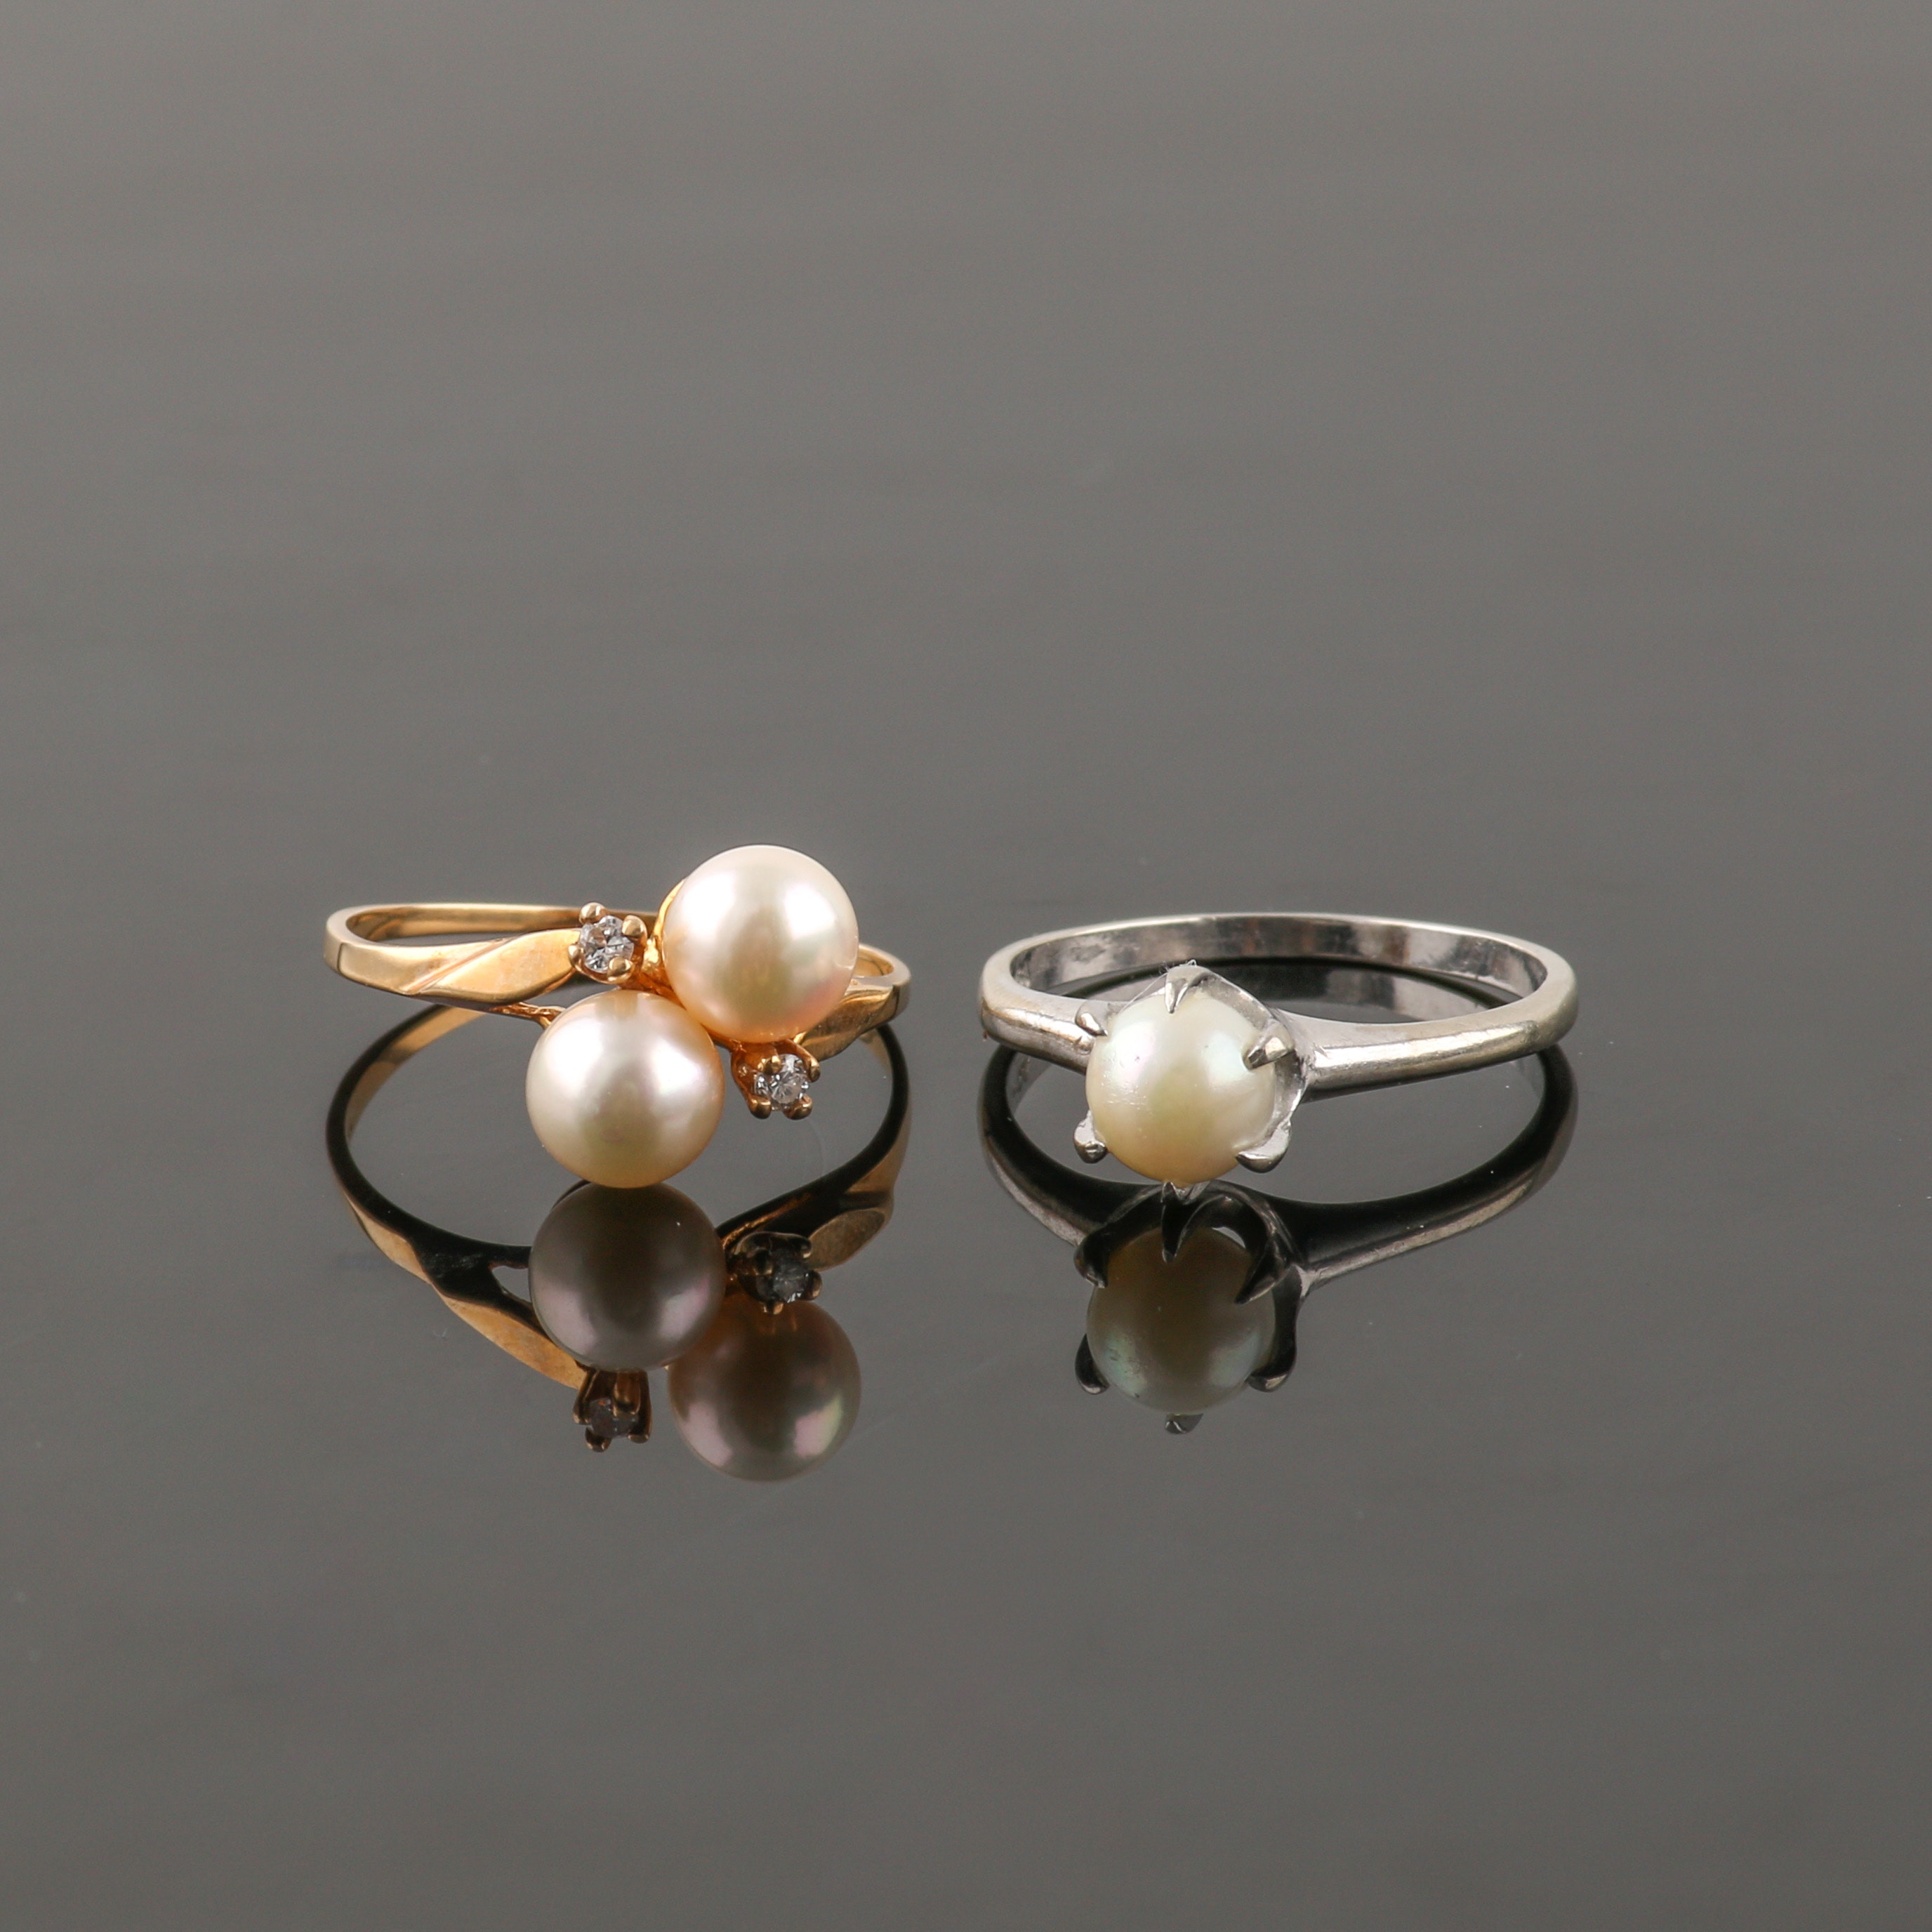 10K Mixed Metal Cultured Pearl and Diamond Ring Selection